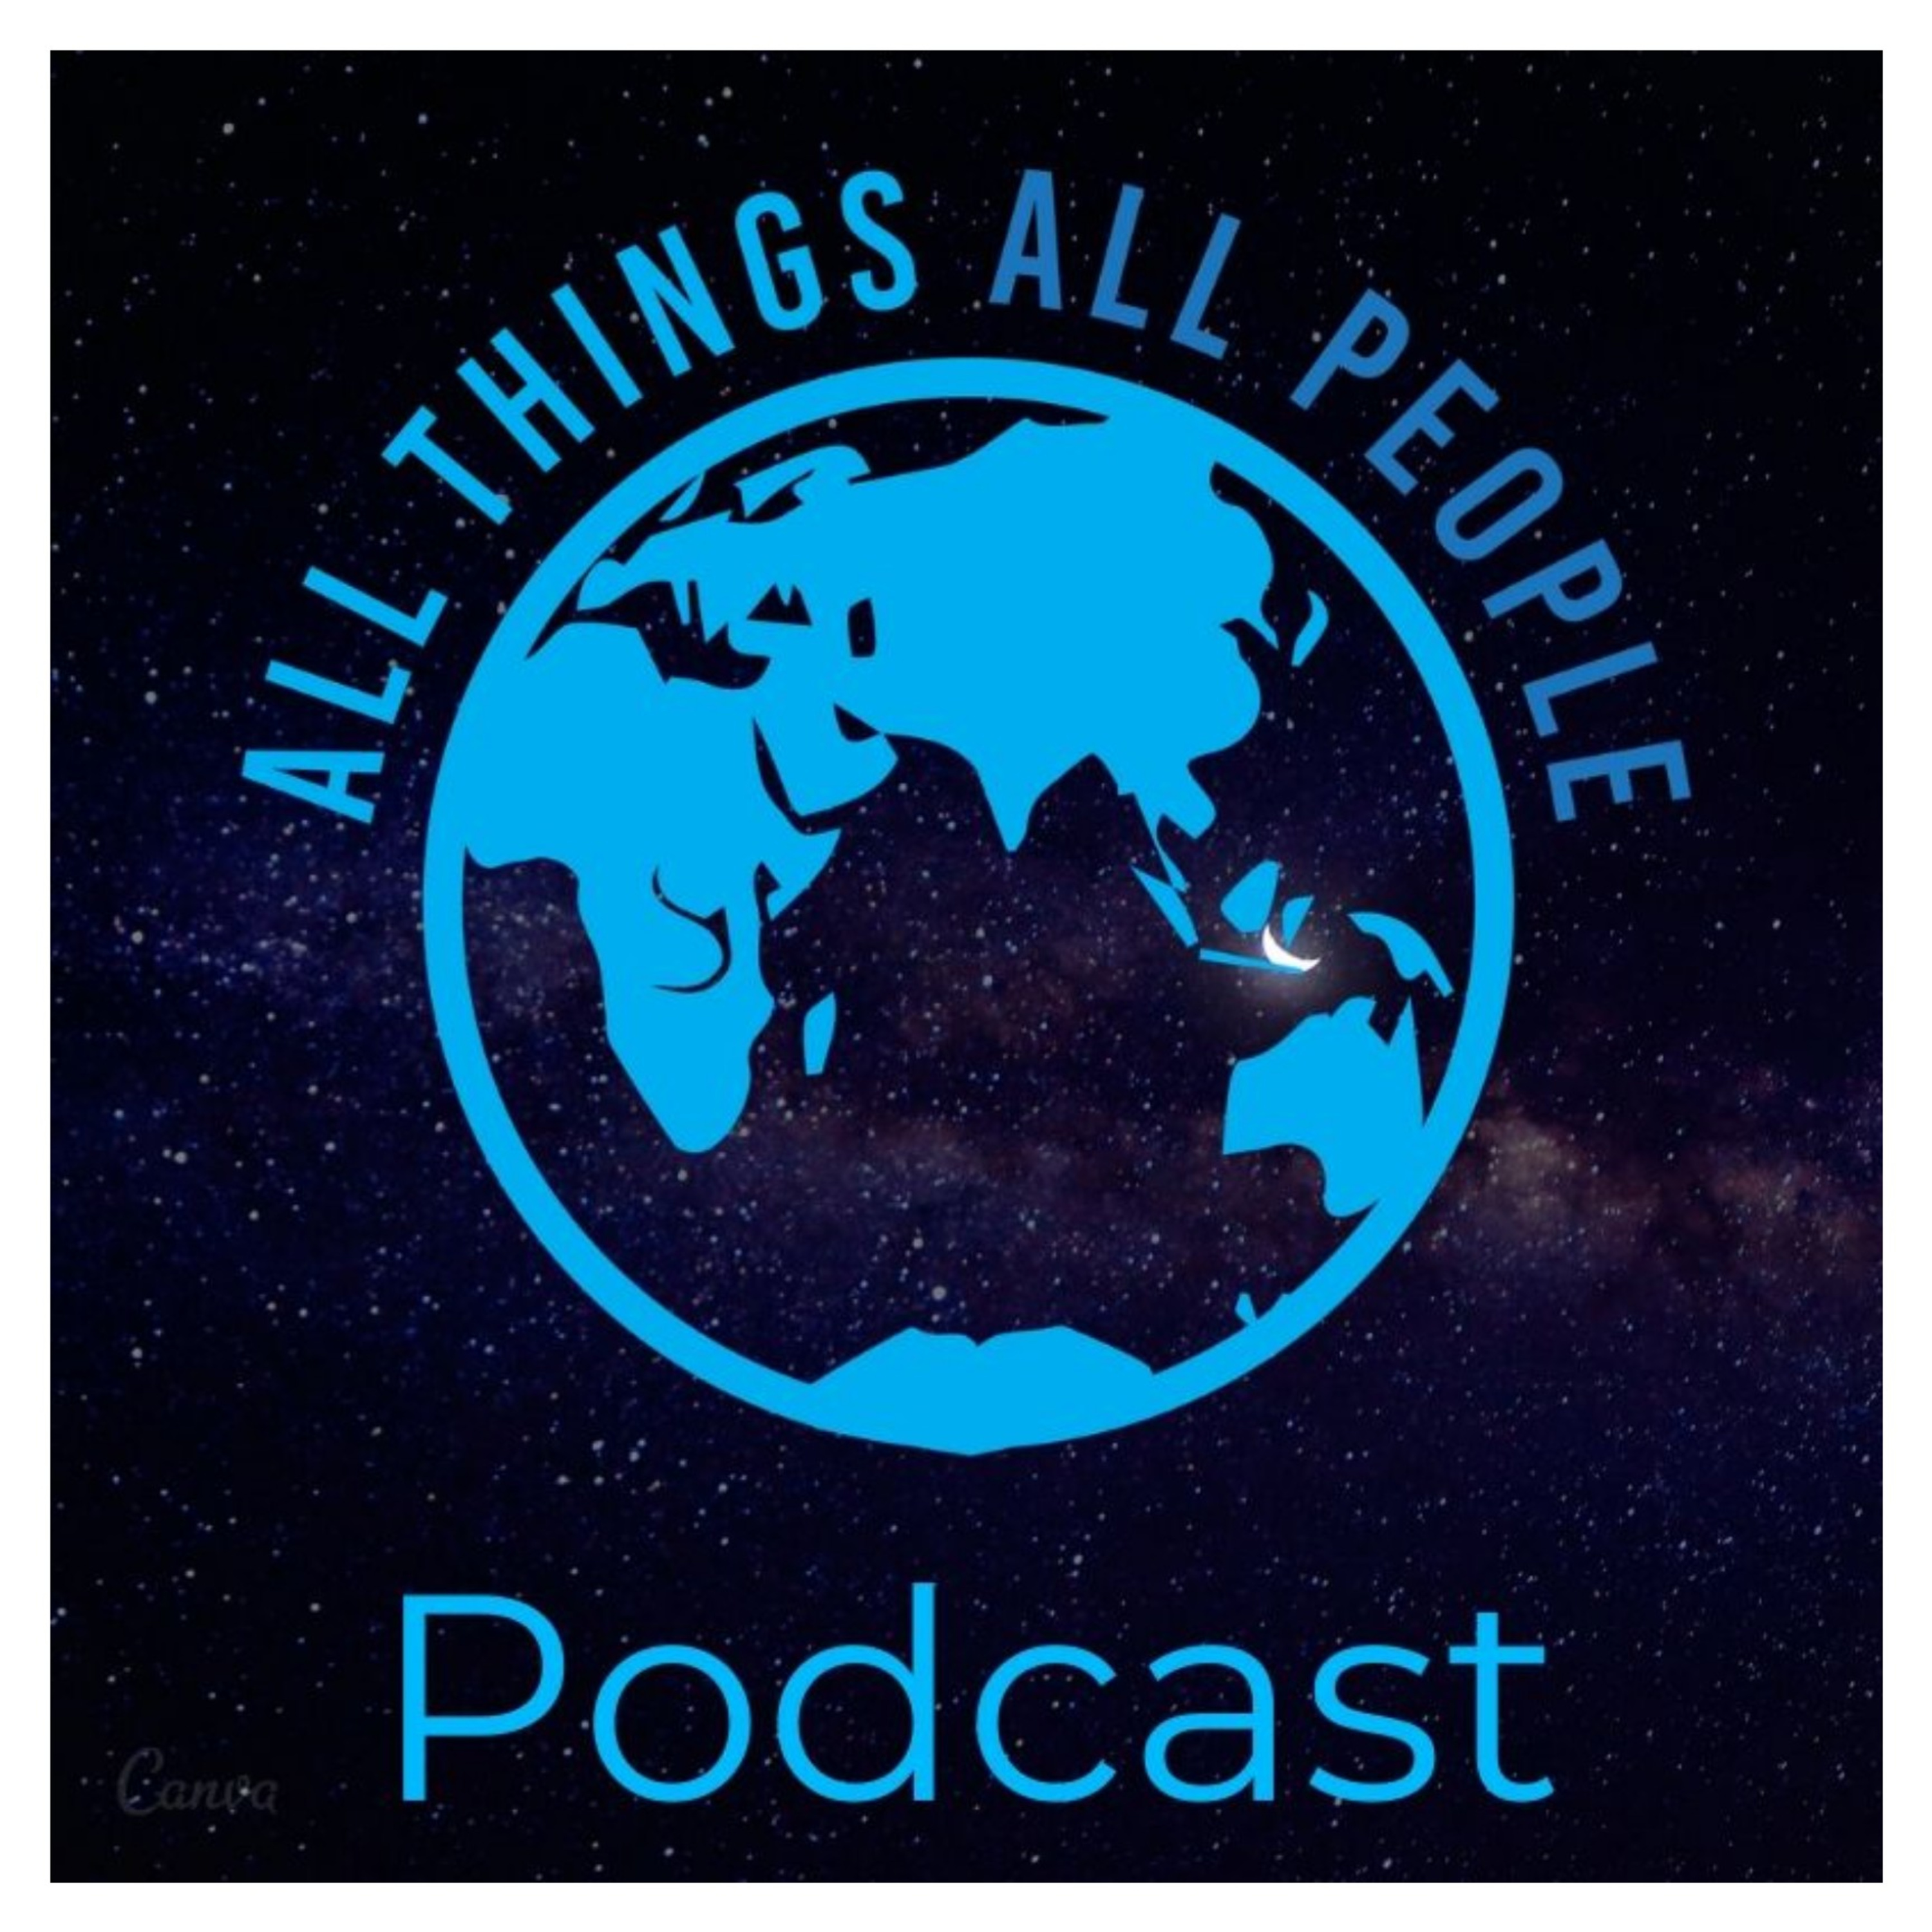 All Things All People Podcast